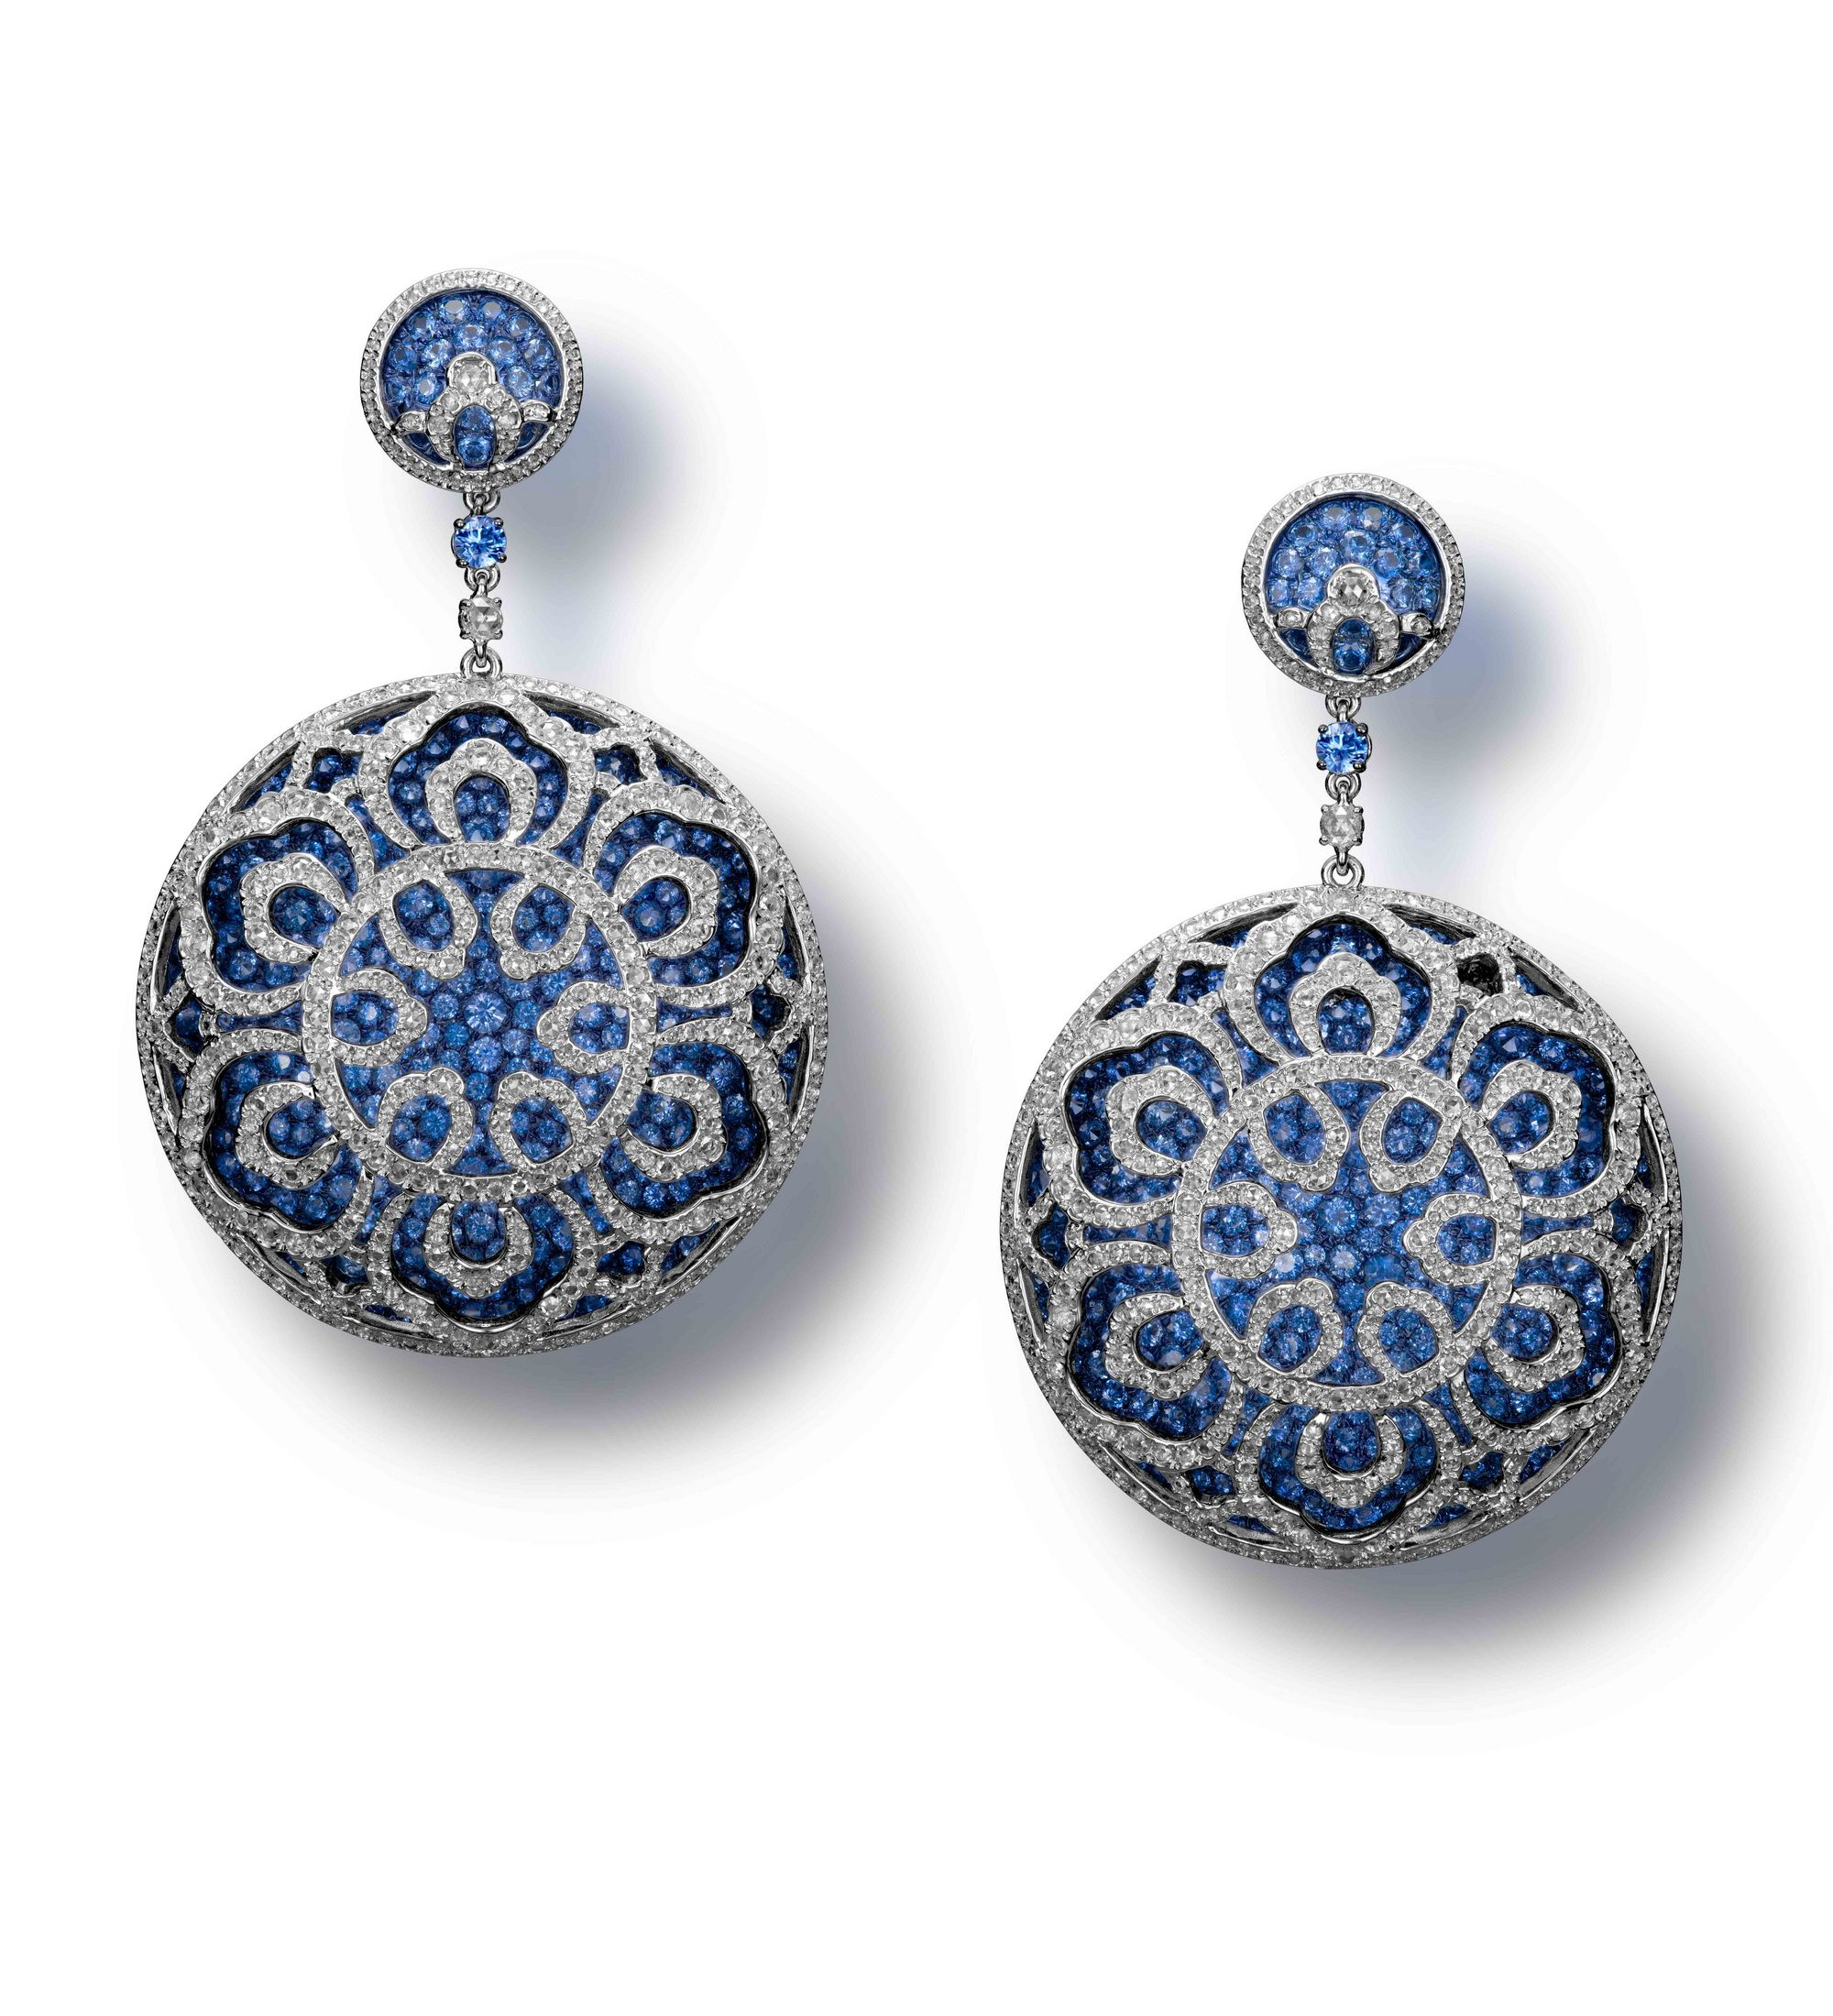 A Pair of Blue Sapphire and Diamond 'Blue and White Reverie' Earrings by Carnet